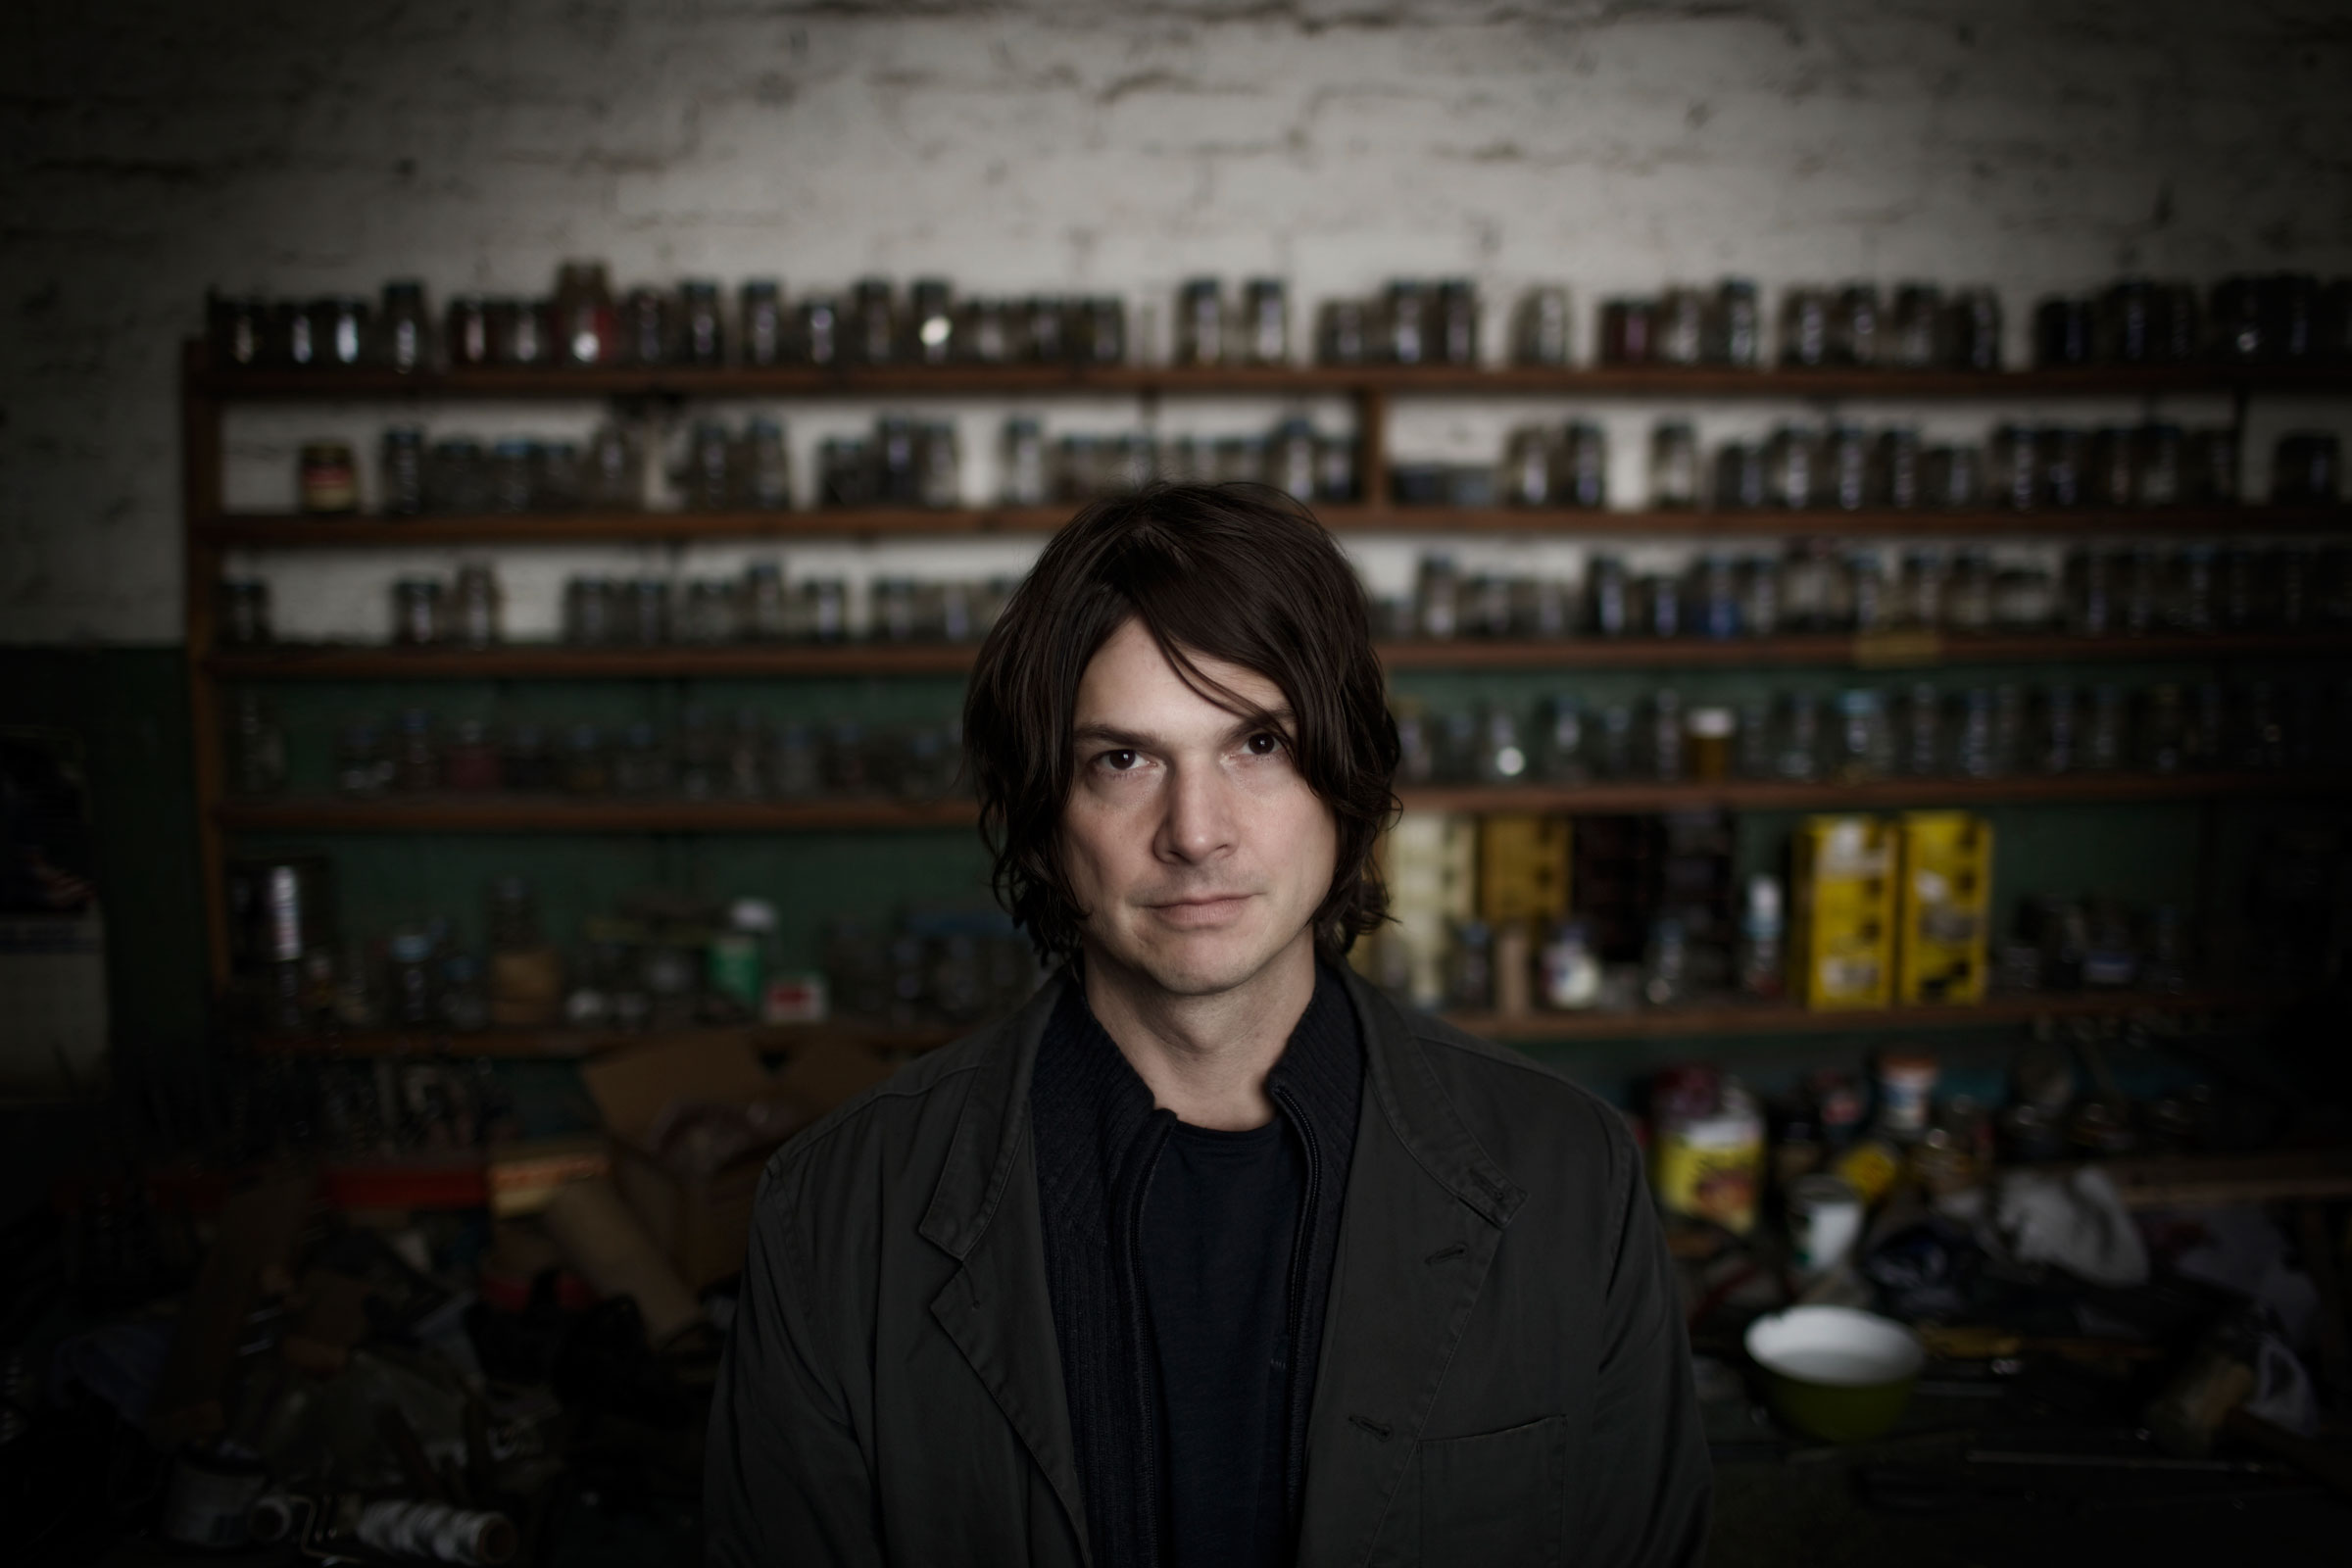 Glenn Kotche (Wilco) Discusses Classical Percussion